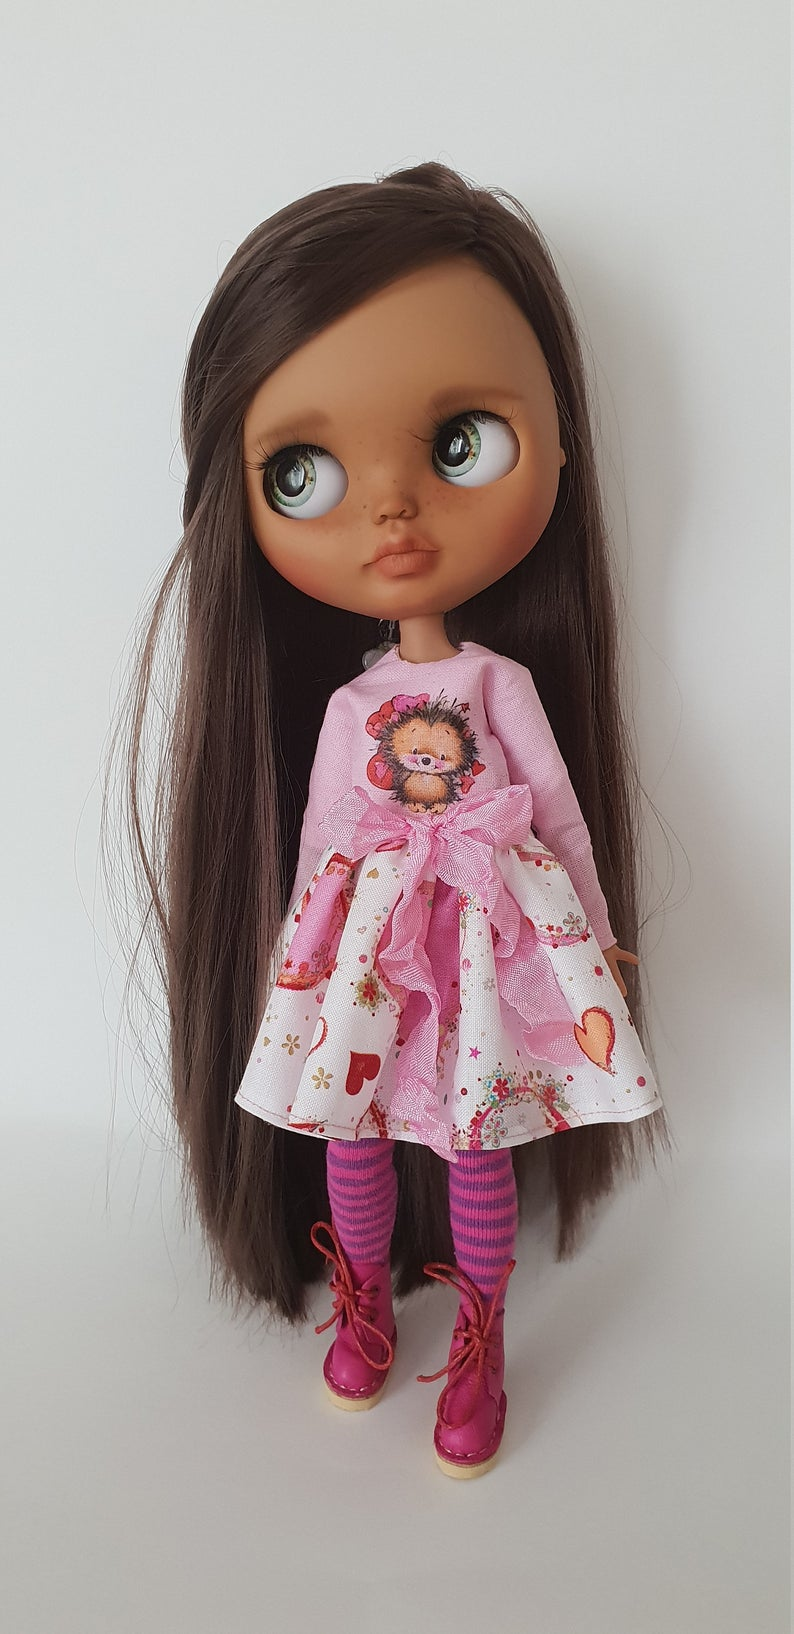 Pupa - Custom Blythe Doll One-Of-A-Kind OOAK Sold-out Custom Blythes